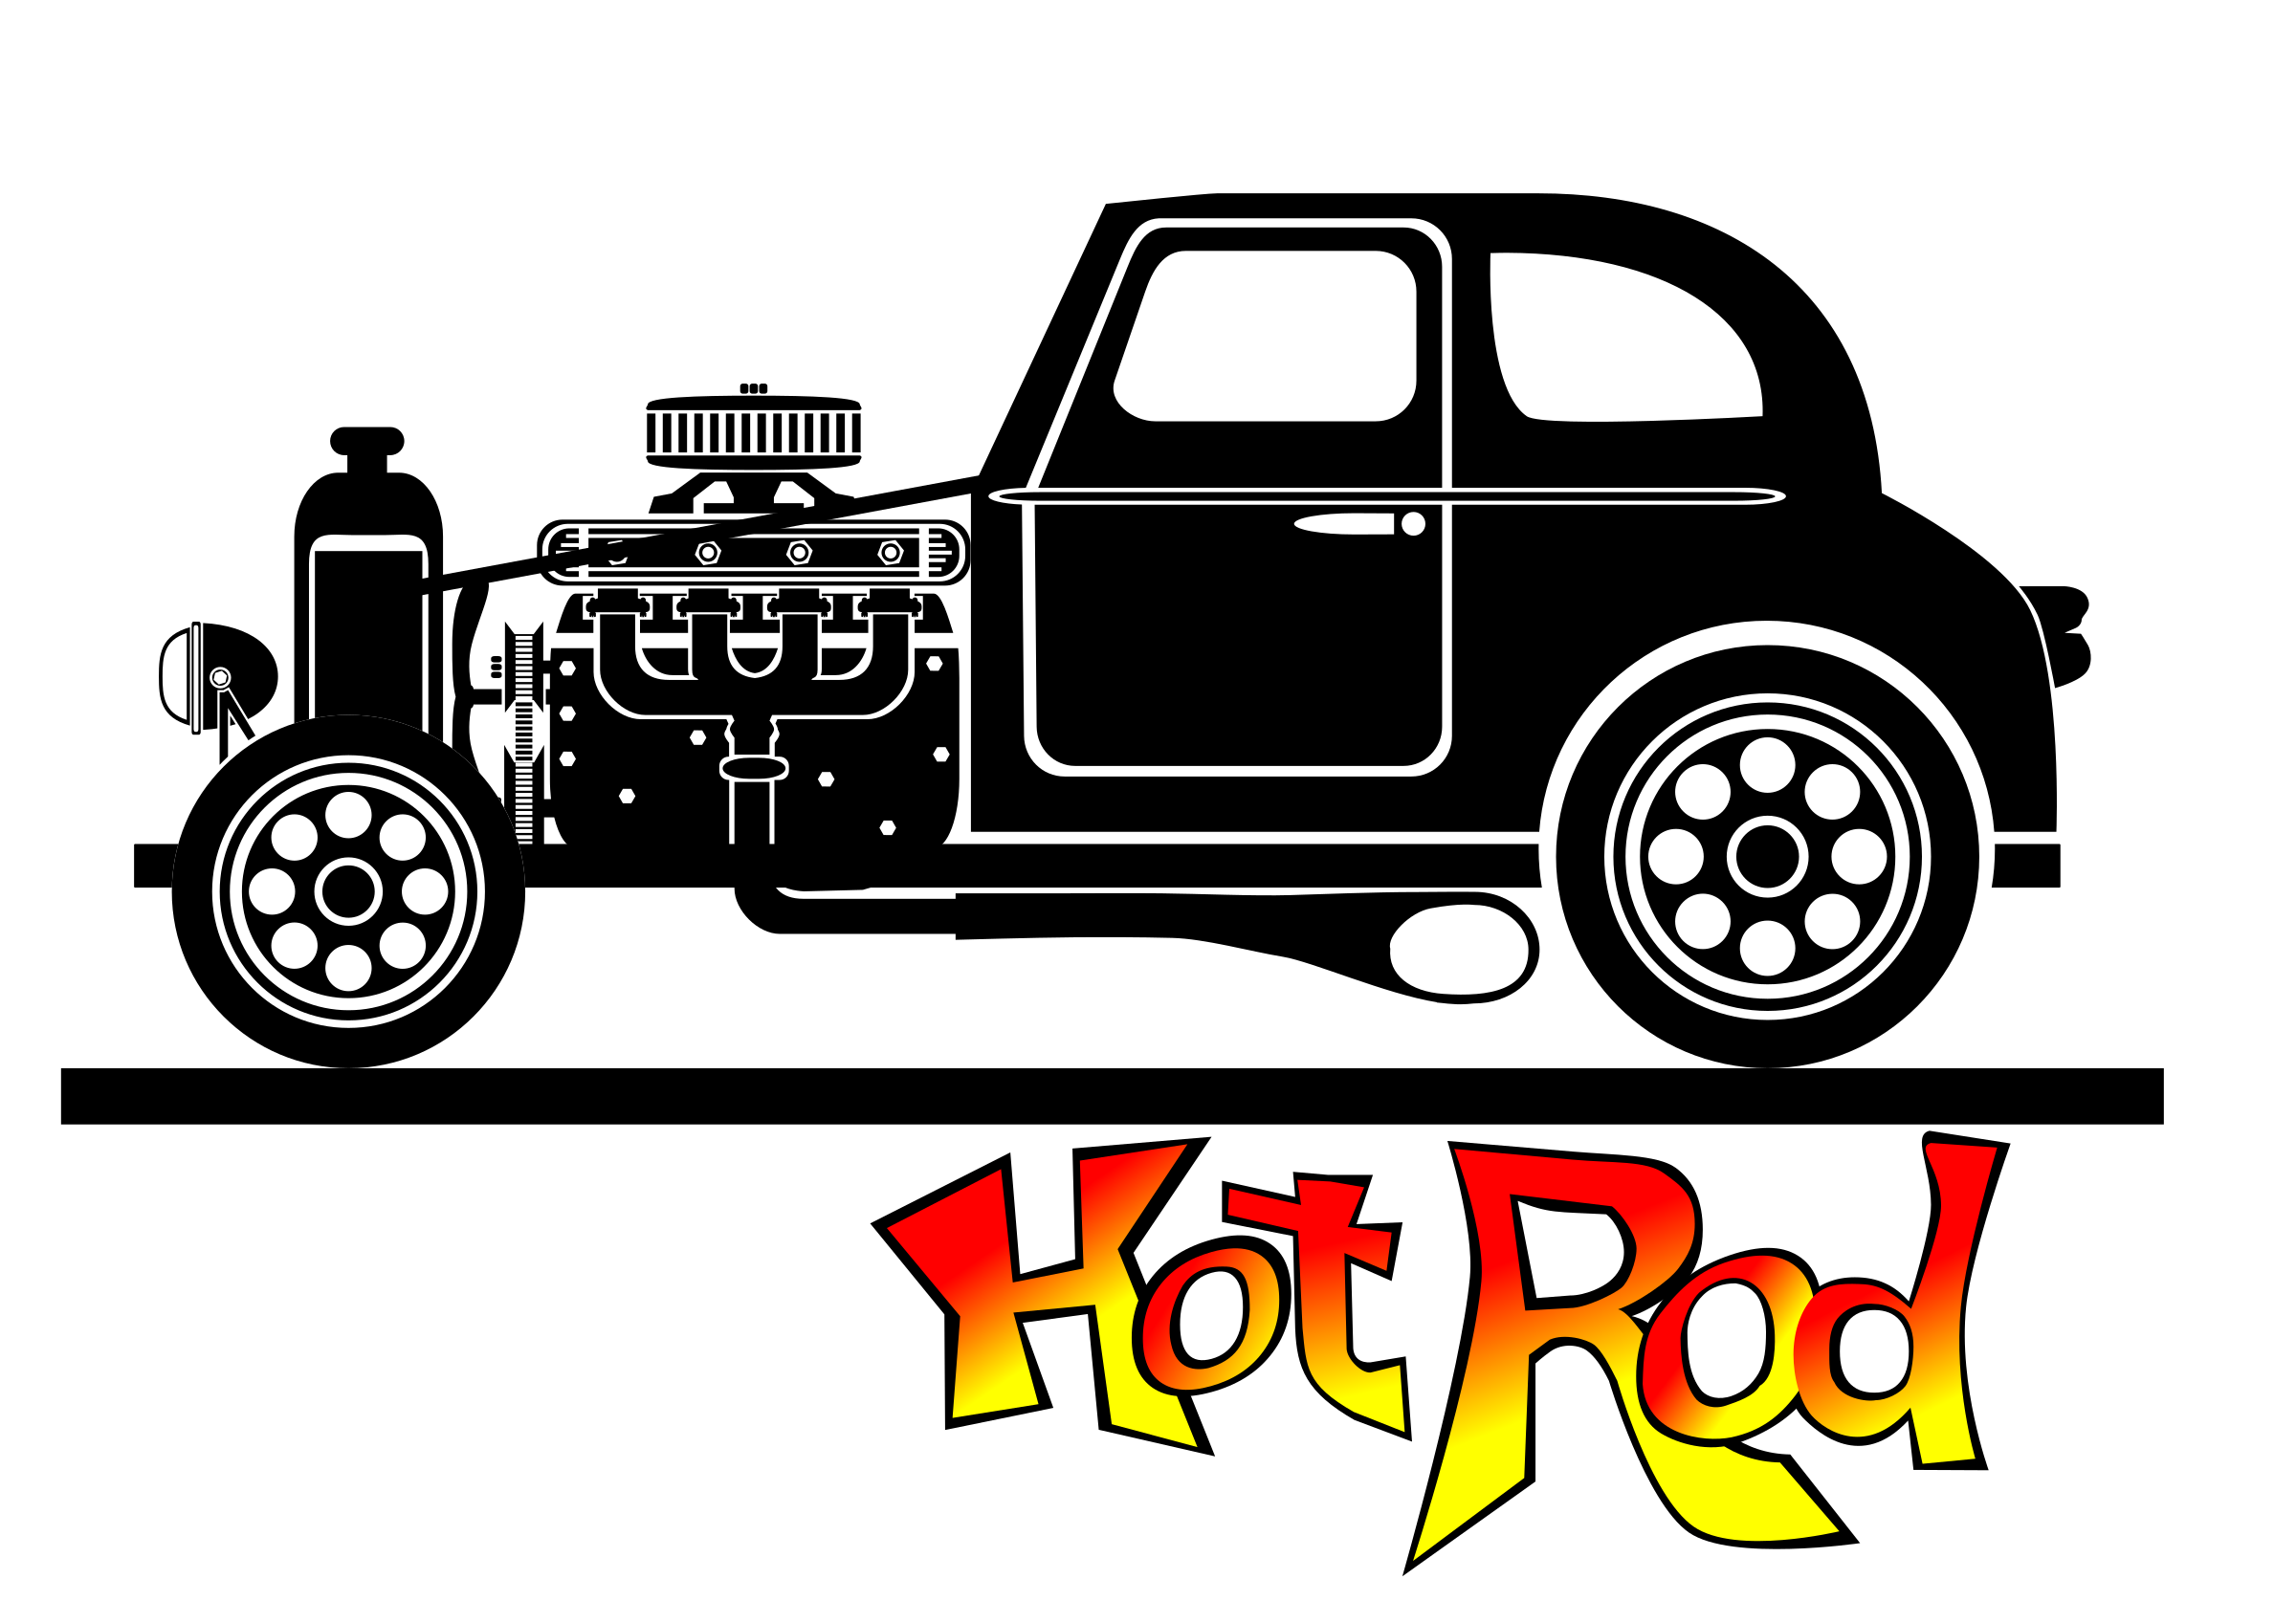 Hot rod car clipart svg black and white download Clipart - Hot rod svg black and white download